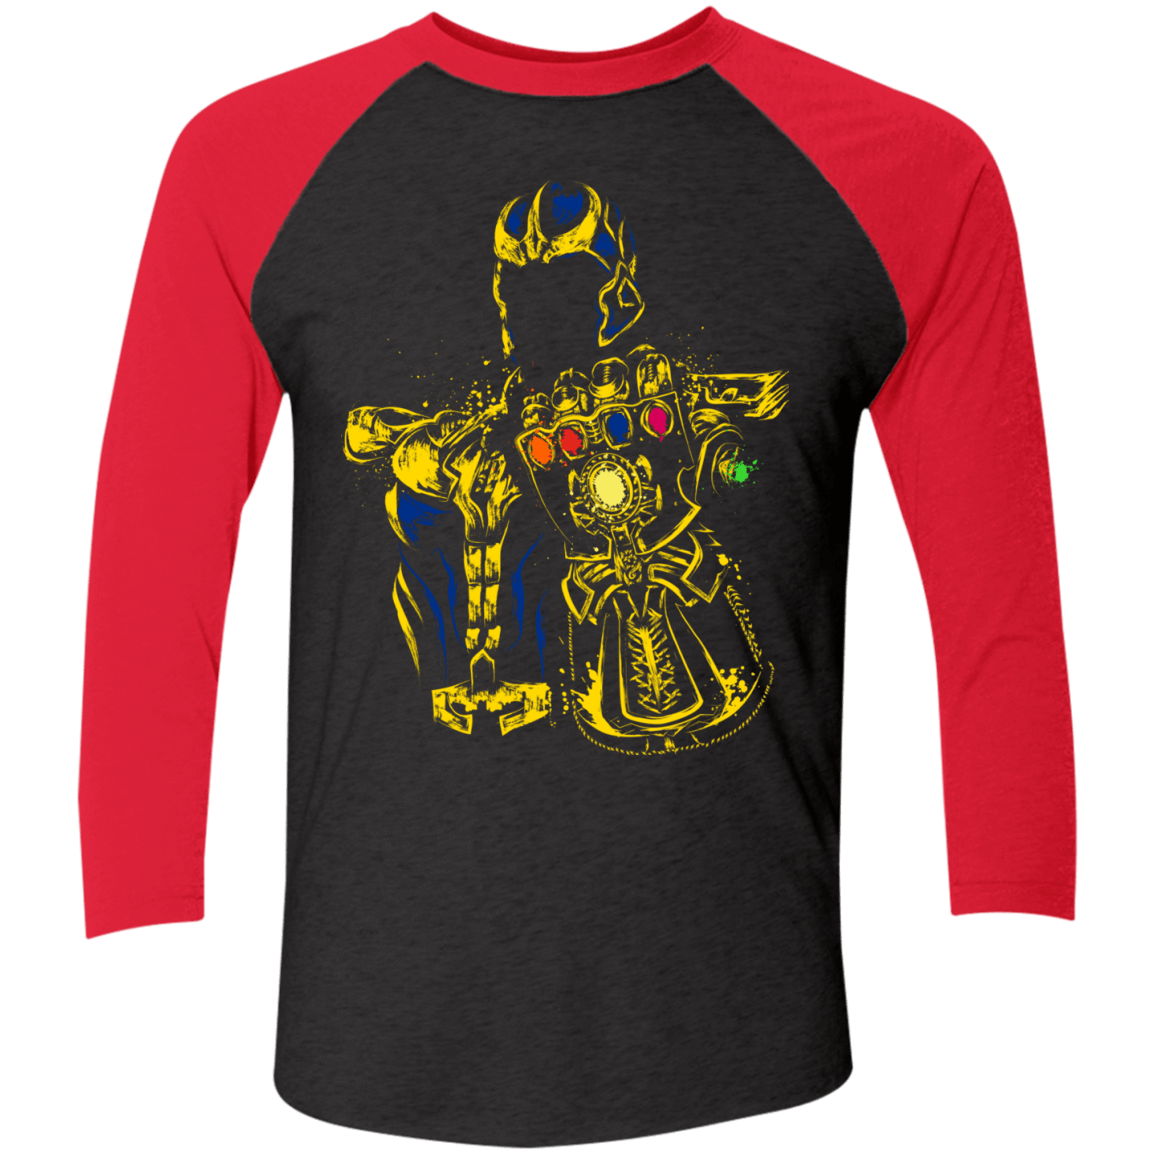 T-Shirts Vintage Black/Vintage Red / X-Small The Mad Titan Men's Triblend 3/4 Sleeve